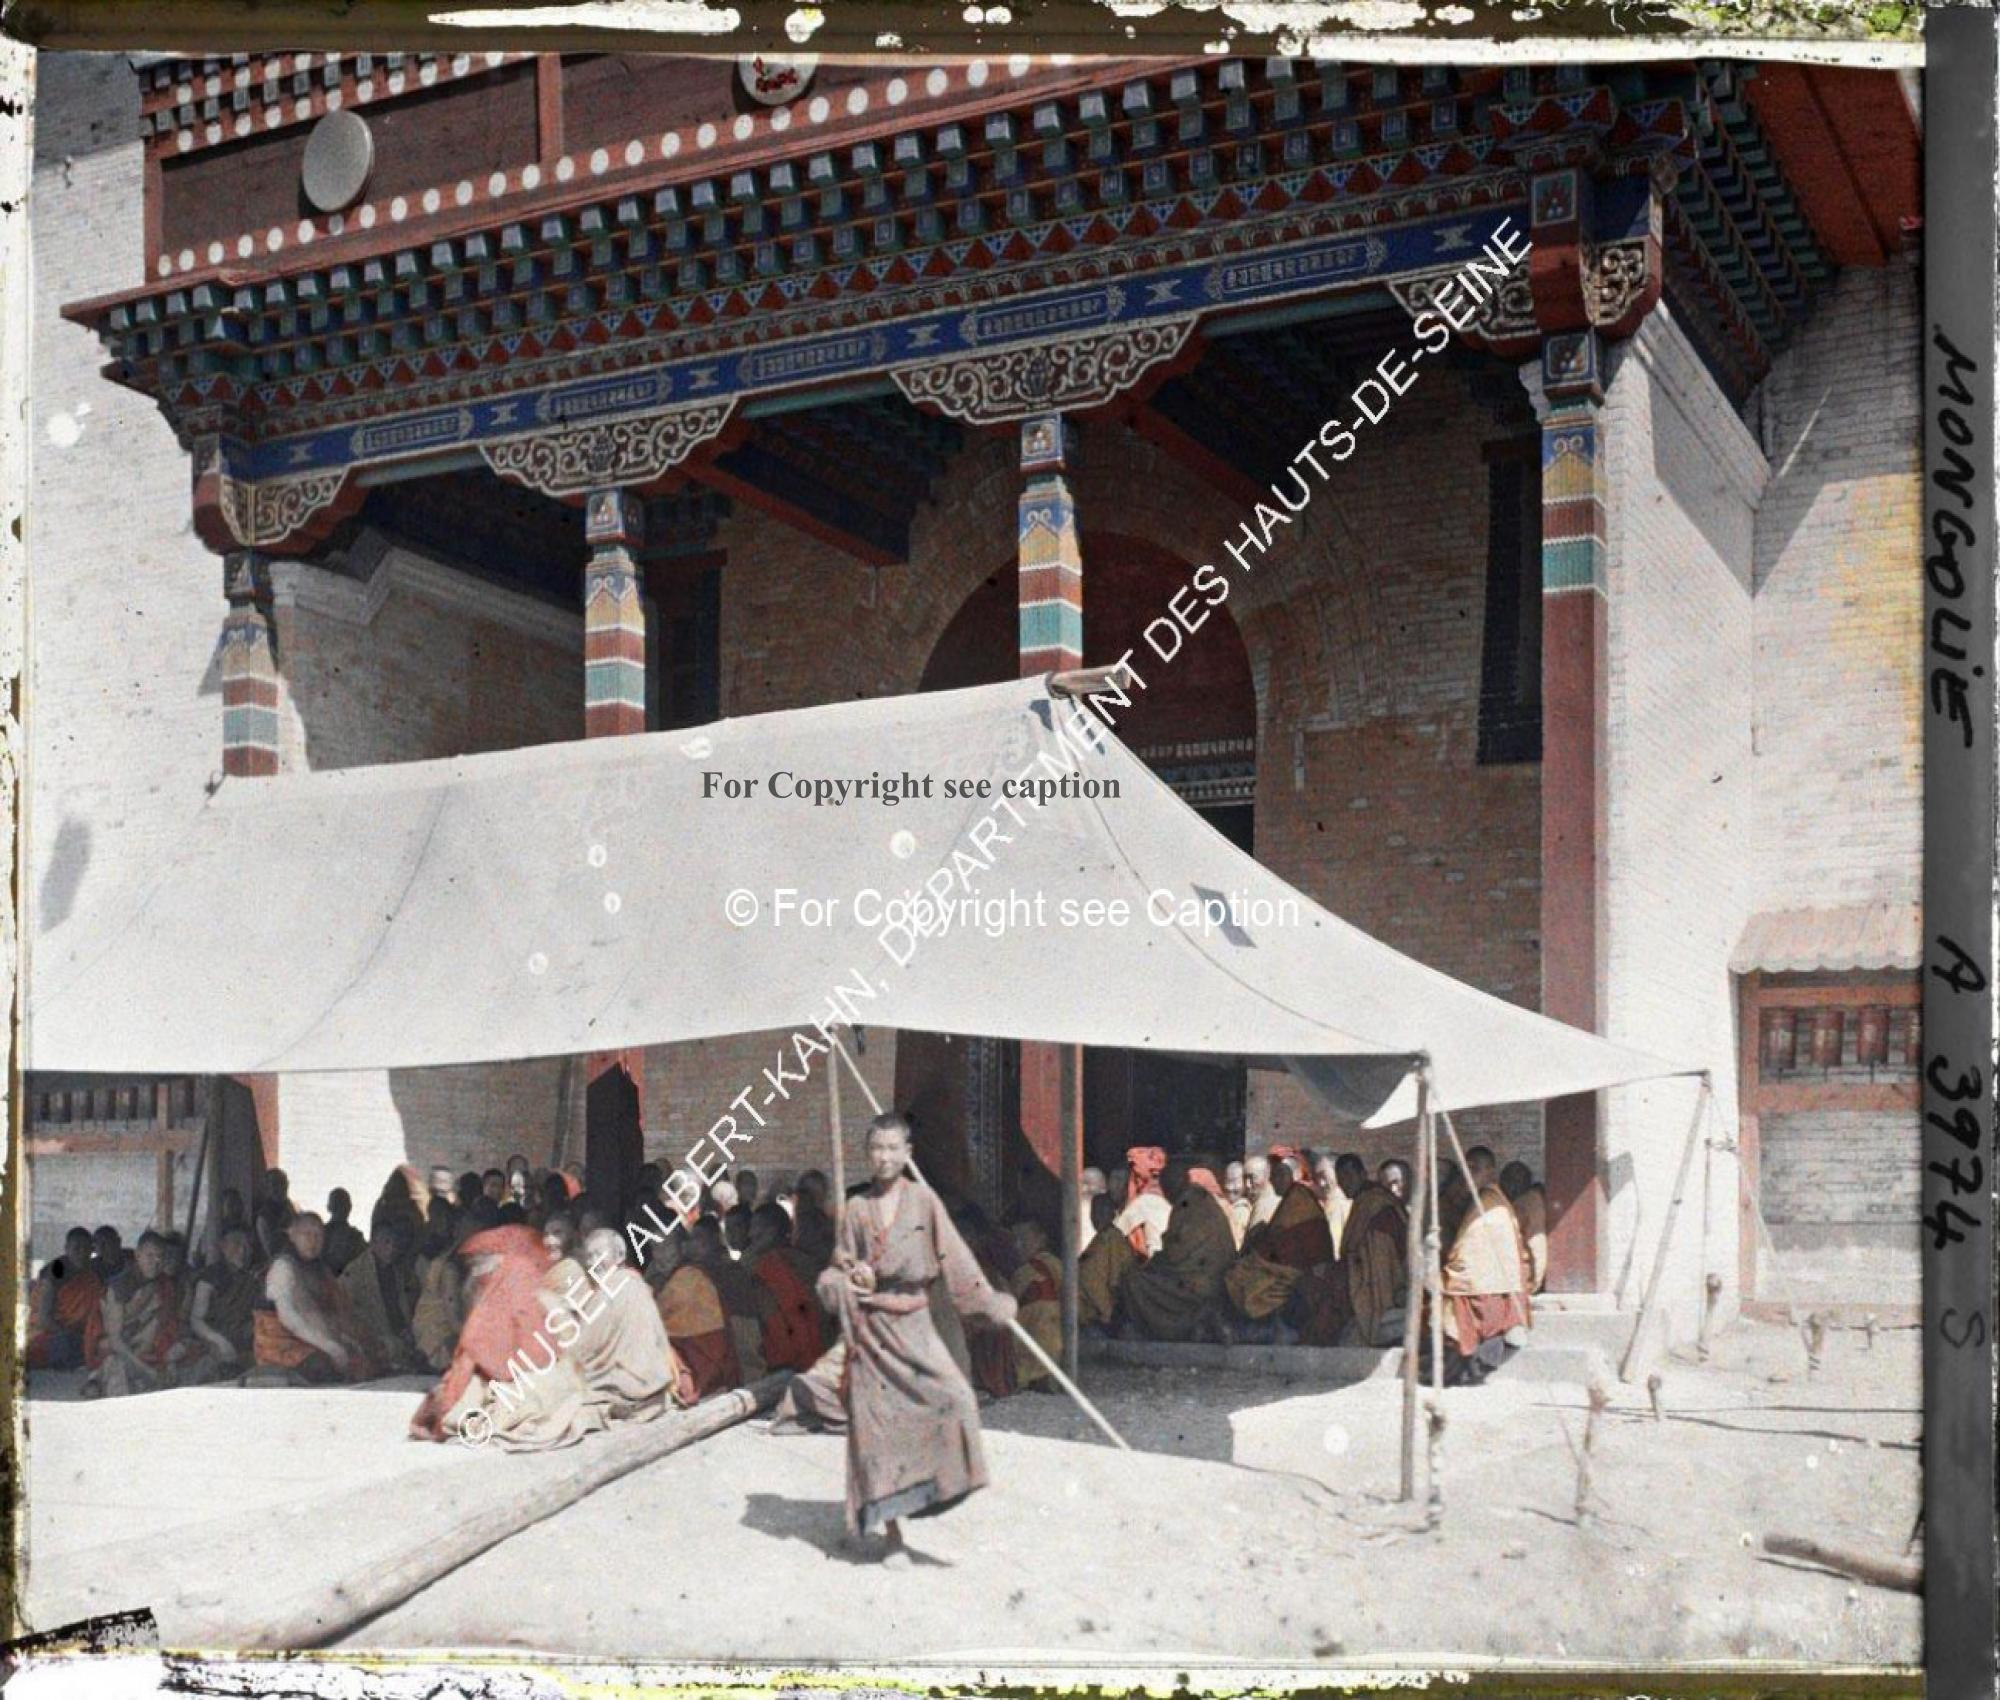 Monks gathering in front of Janraiseg Temple. Musée Albert-Kahn. A3974S. Photo by Stéphane Passet, 2